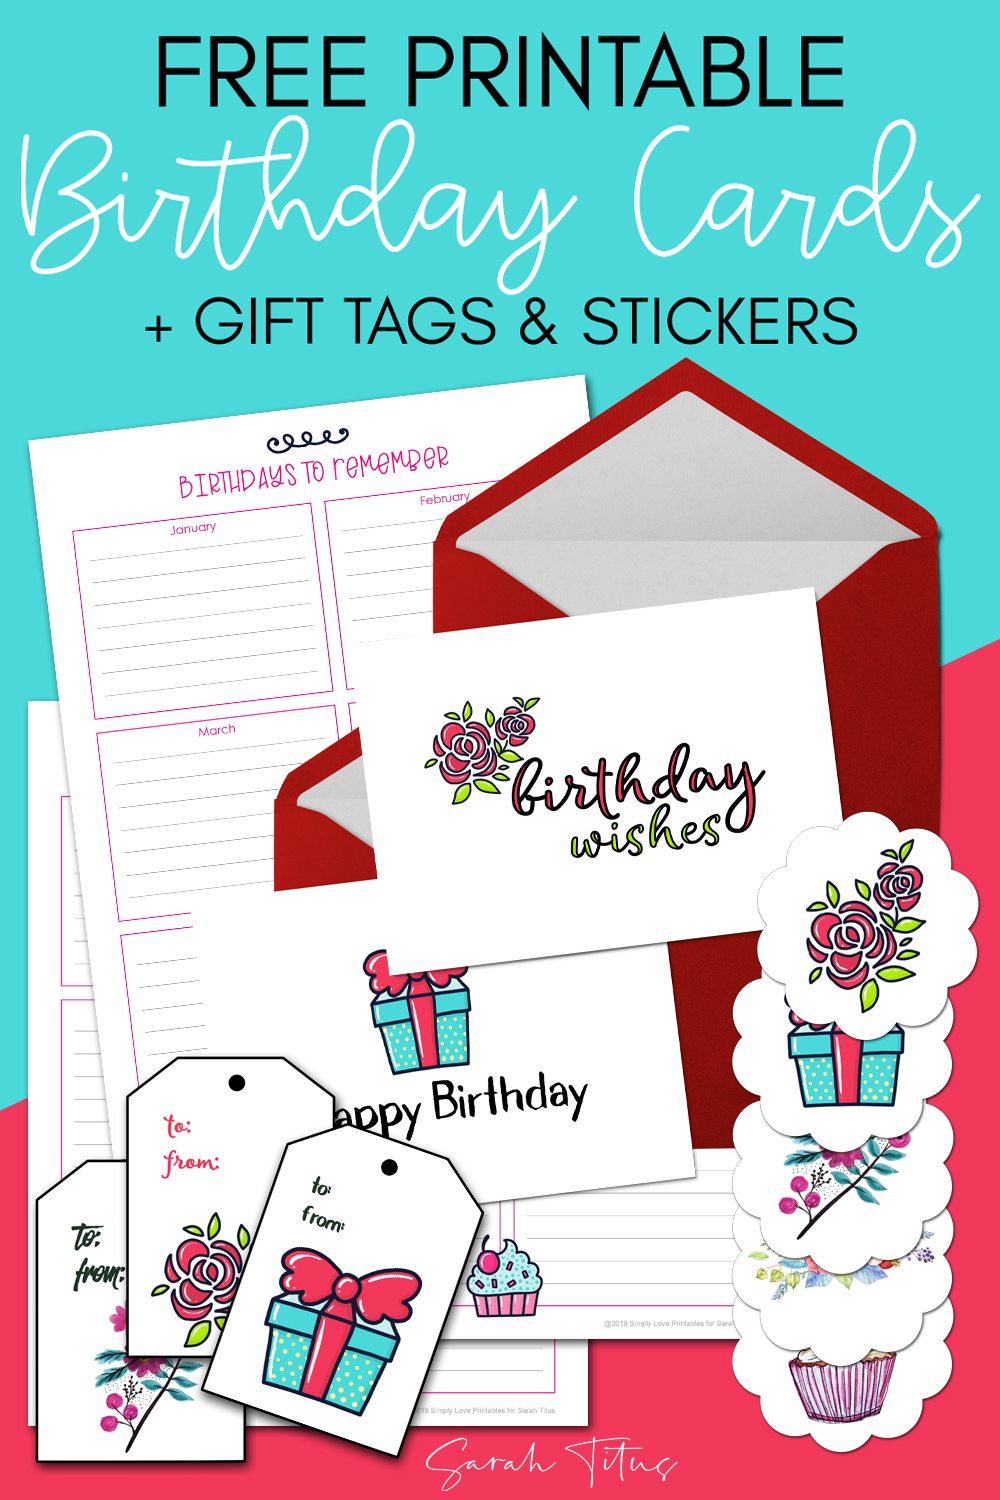 photograph regarding Free Printable Birthday Cards for Adults called Totally free Printable Birthday Playing cards + Reward Tags Stickers - Sarah